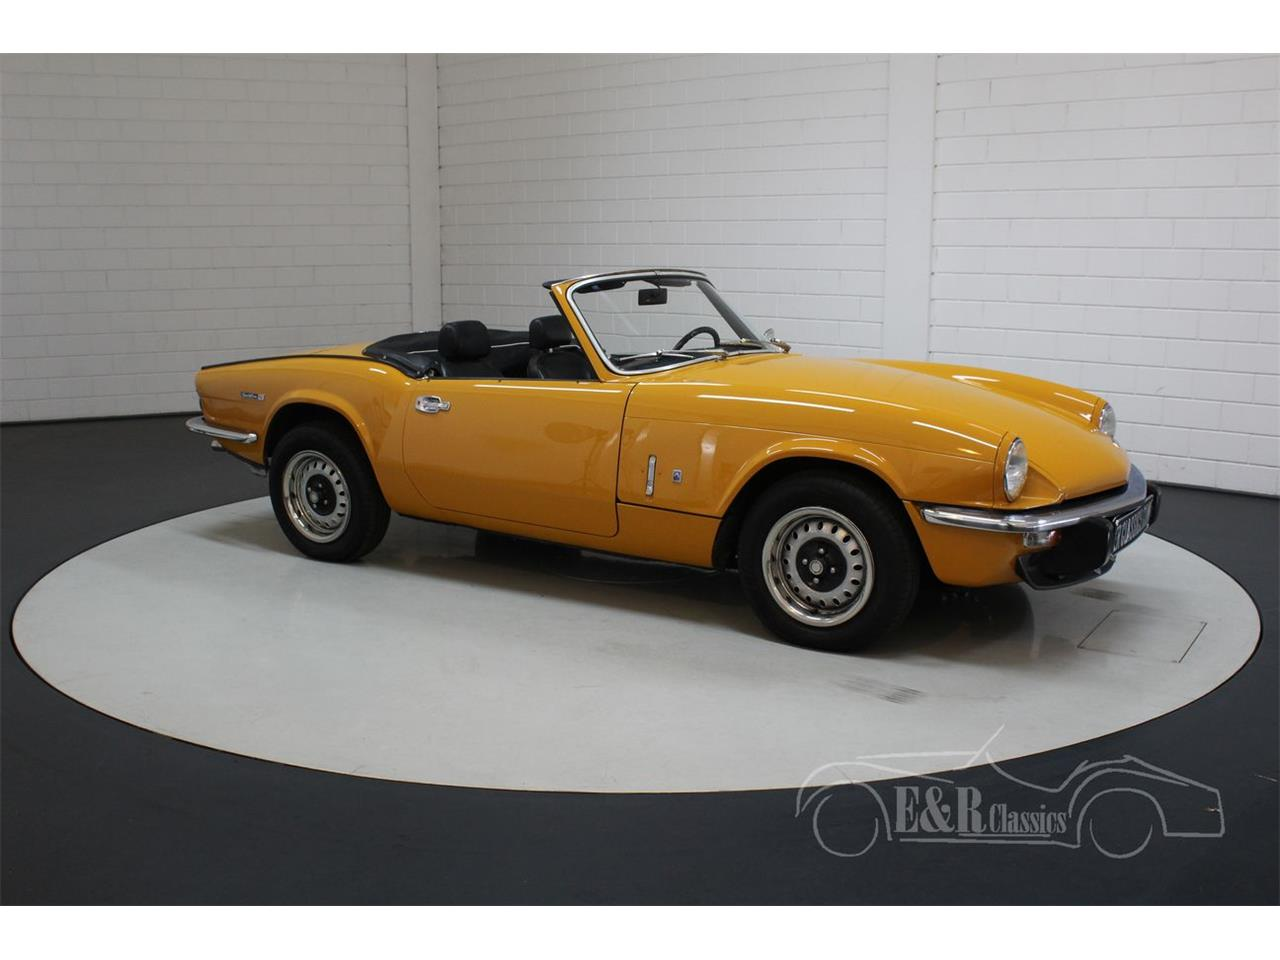 Large Picture of '74 Triumph Spitfire - $16,850.00 Offered by E & R Classics - QIIQ